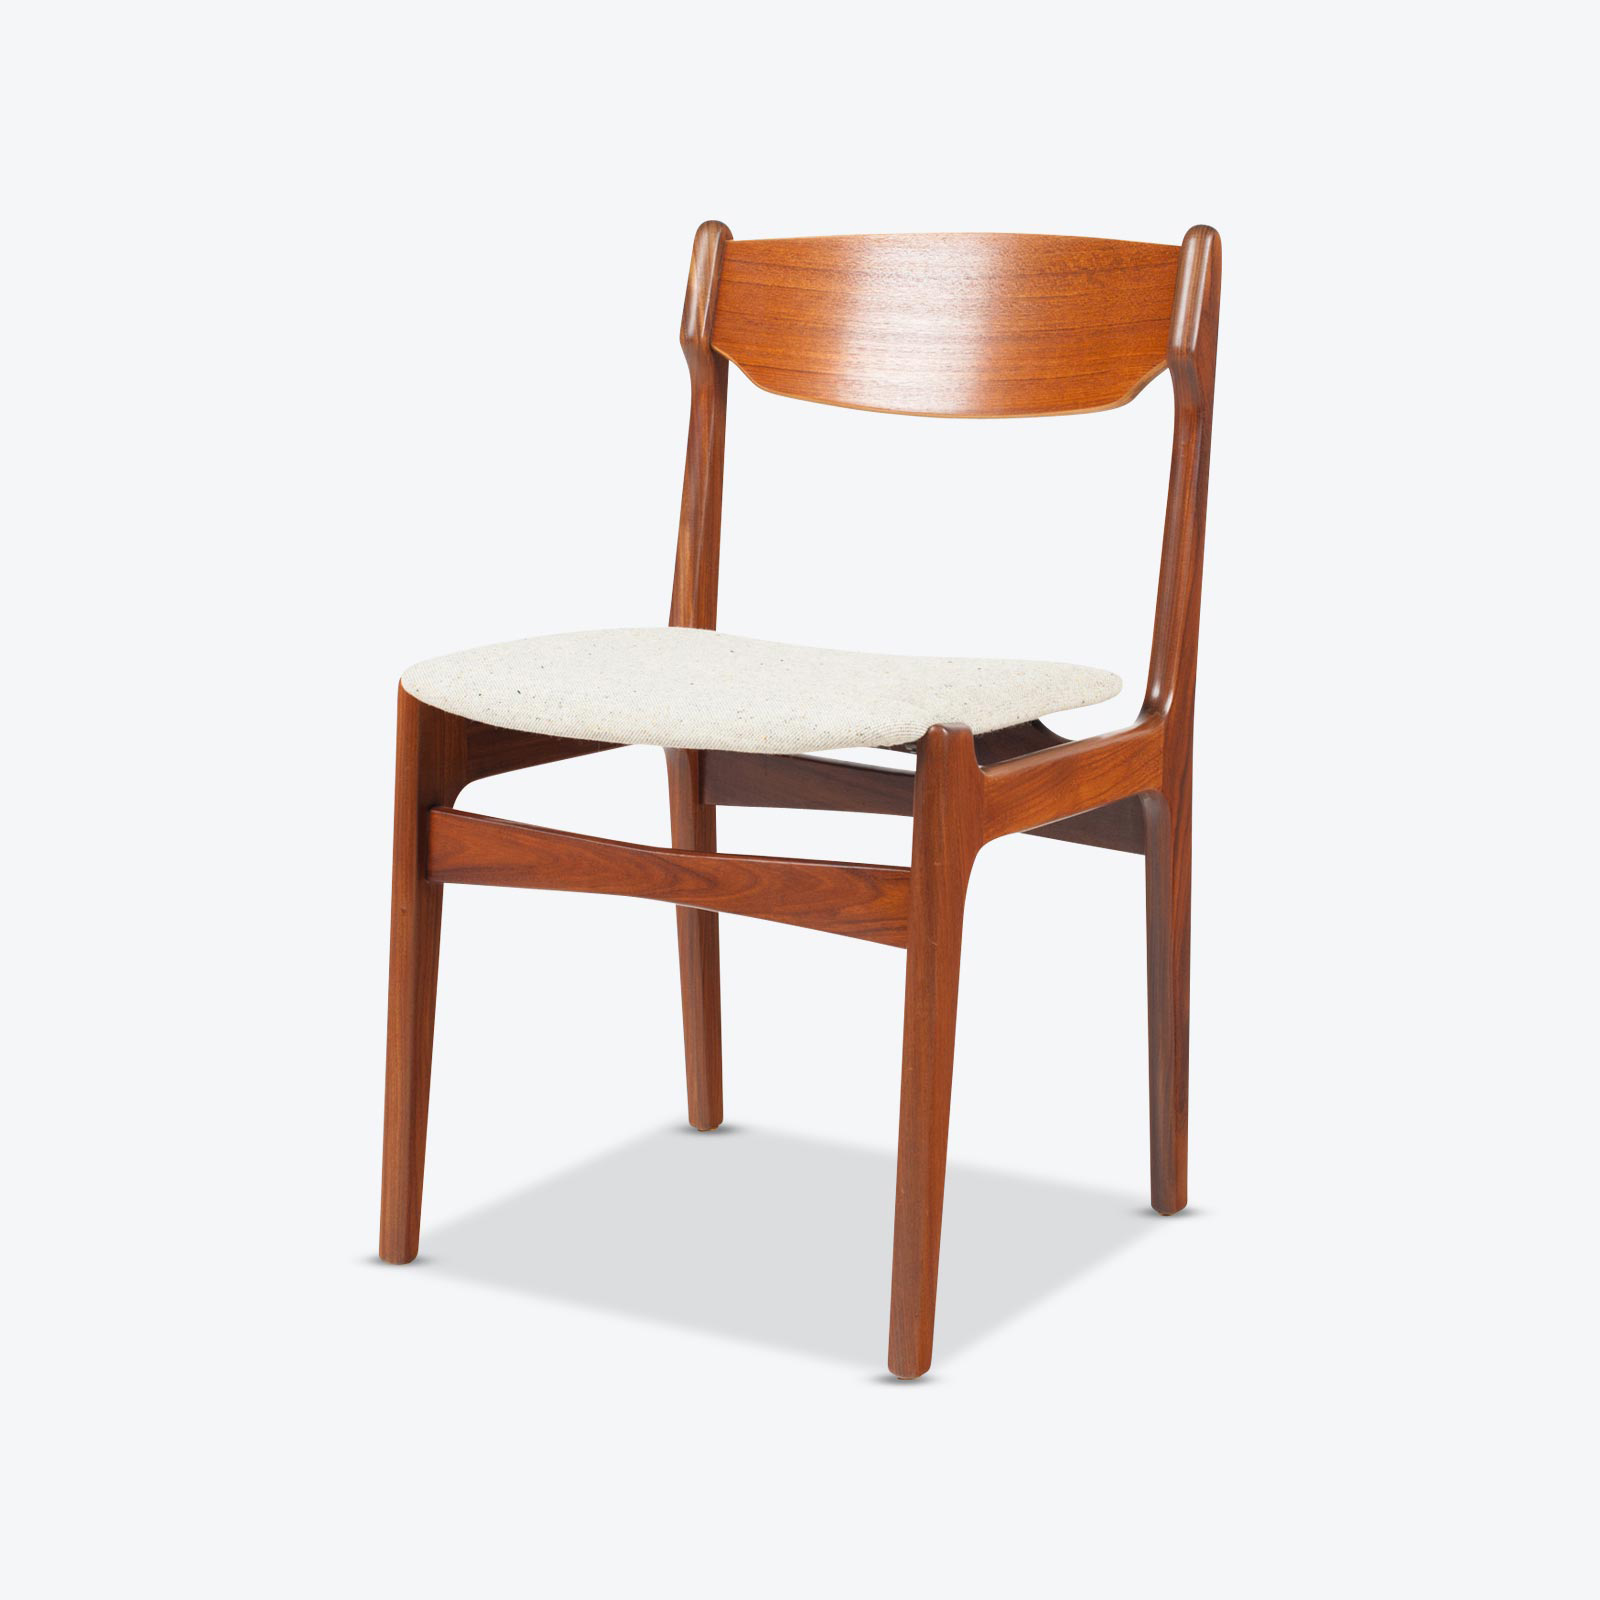 Set Of 6 Dining Chairs By Erik Buch In Teak 1960s Denmark 00.jpg